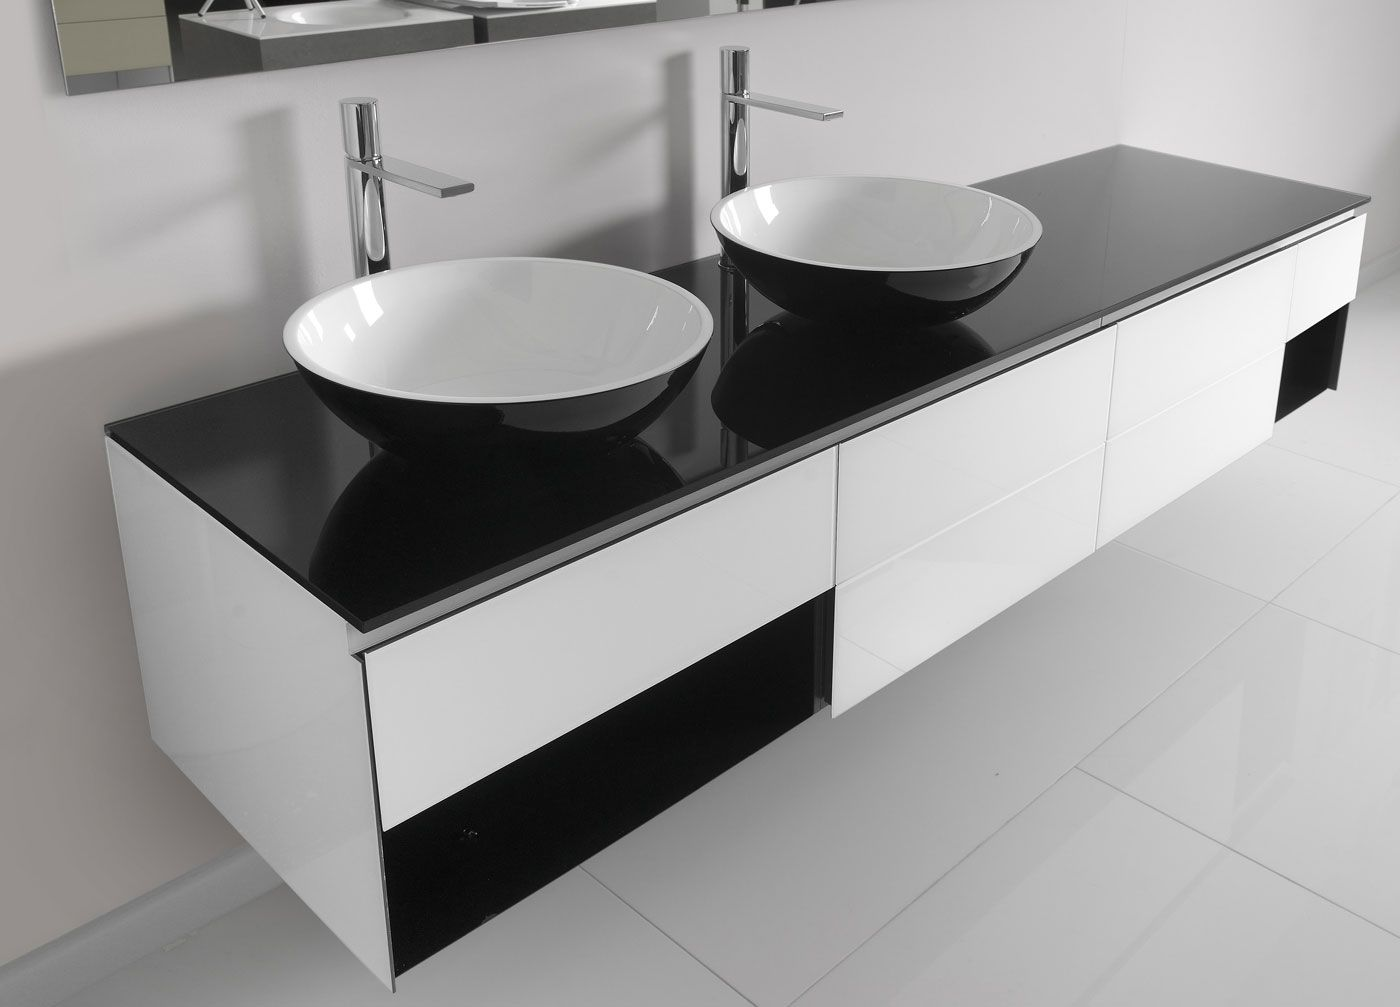 roccia supply this product line: monolite 2.0 - composition al 357, Badezimmer ideen